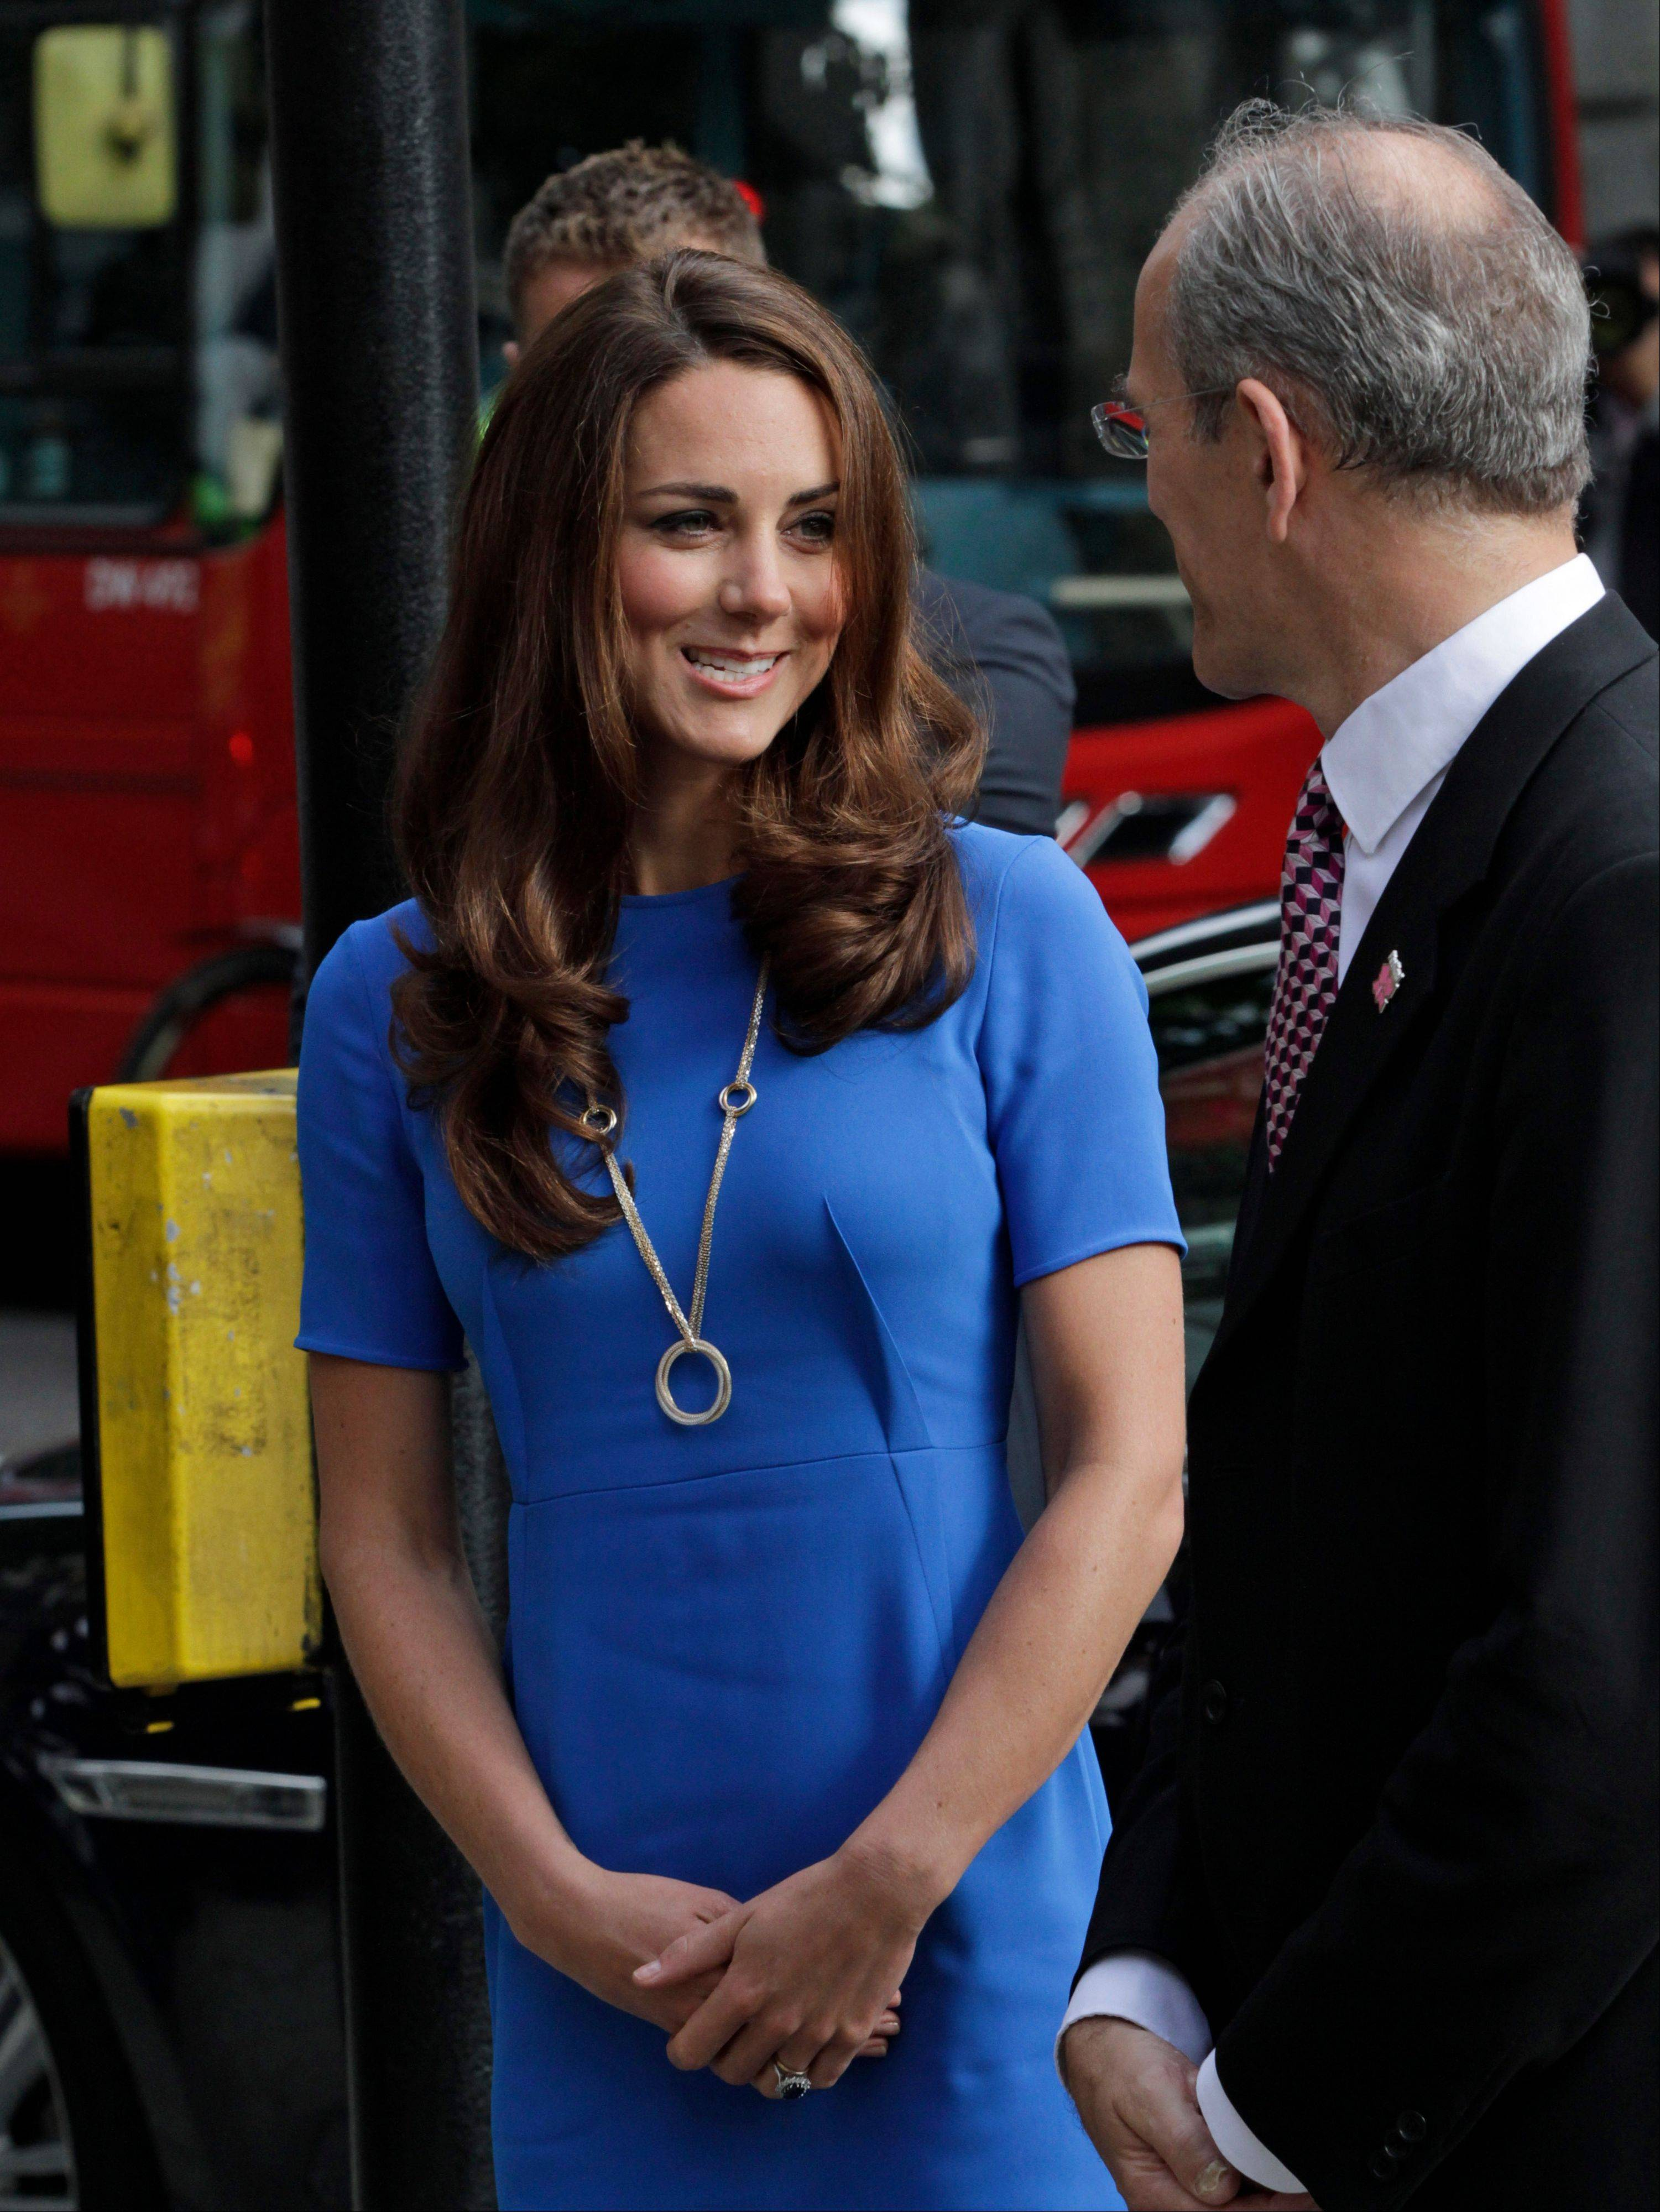 Kate, Duchess of Cambridge, will be on hand to watch gymnastics and synchronized swimming at the Olympics.